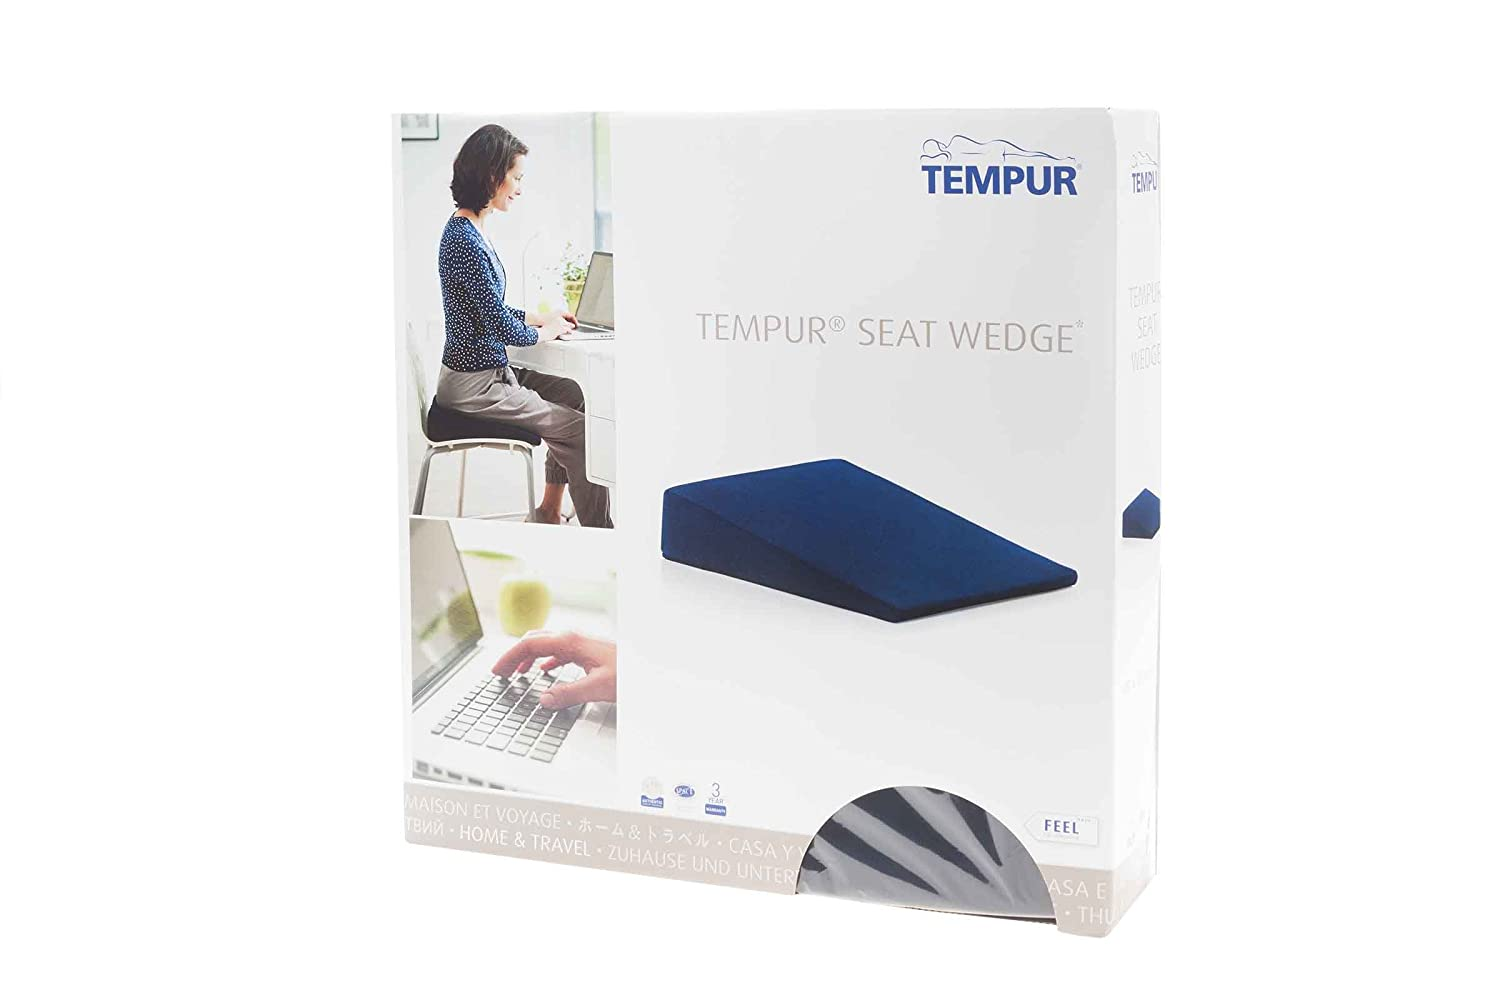 Tempur Seat Wedge